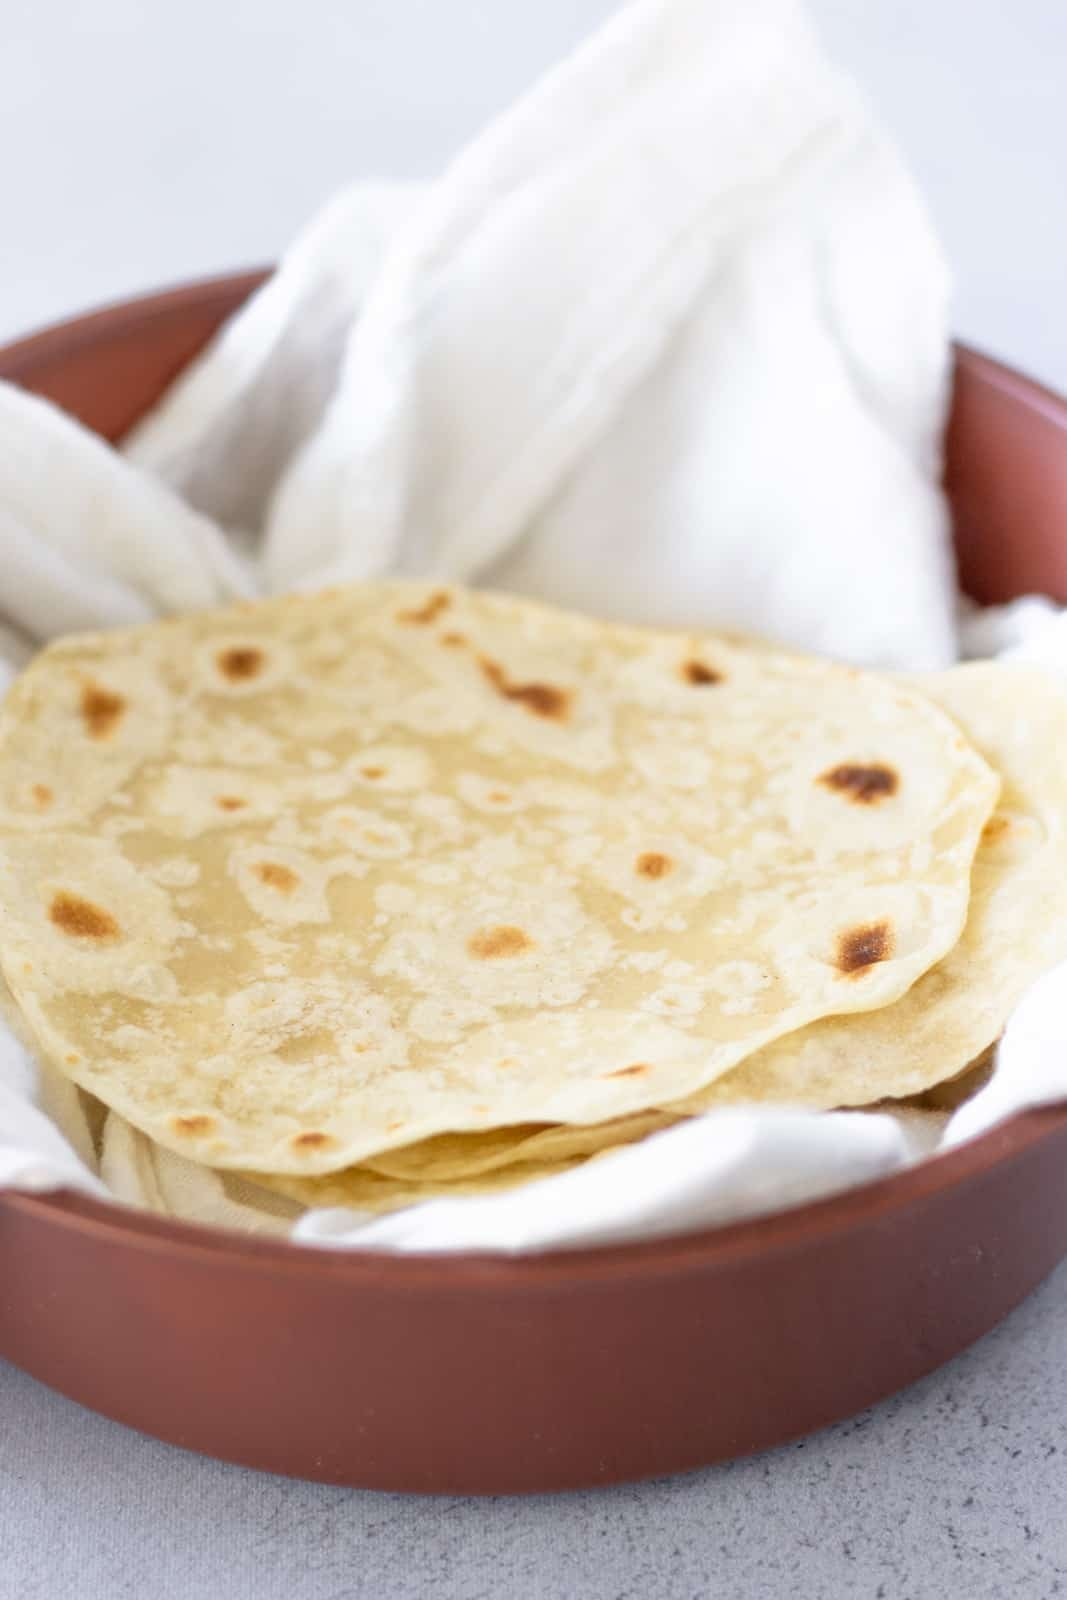 Tortillas stacked in a brown tortilla warmer with a white cloth inside.